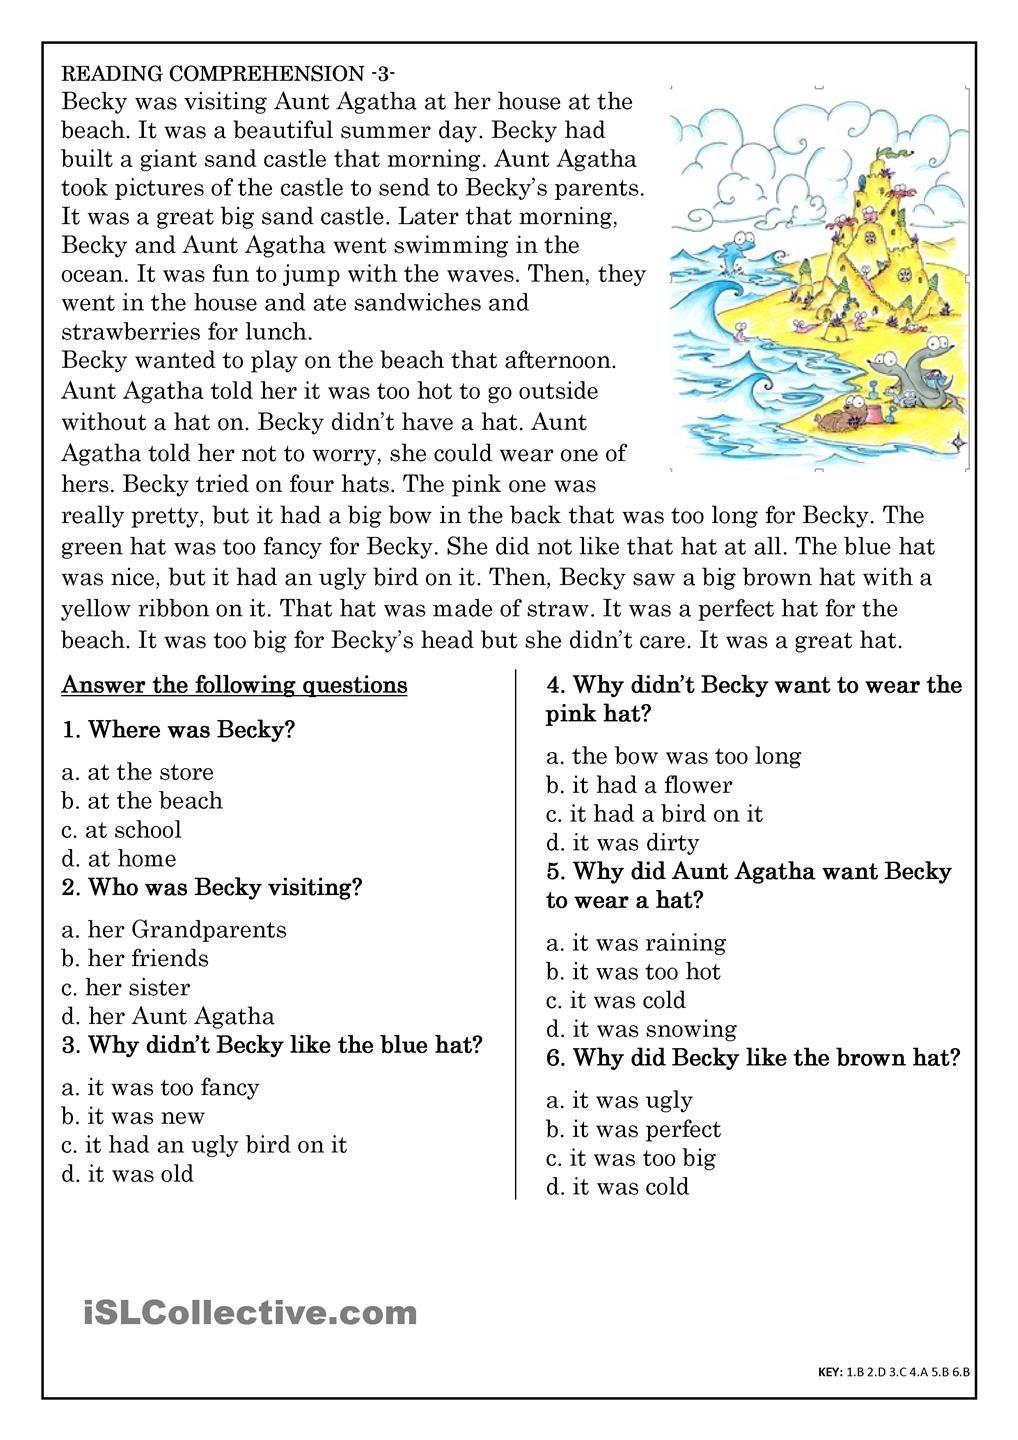 Cold War Reading Comprehension Worksheet Reading Prehension for Beginner and Elementary Students 3